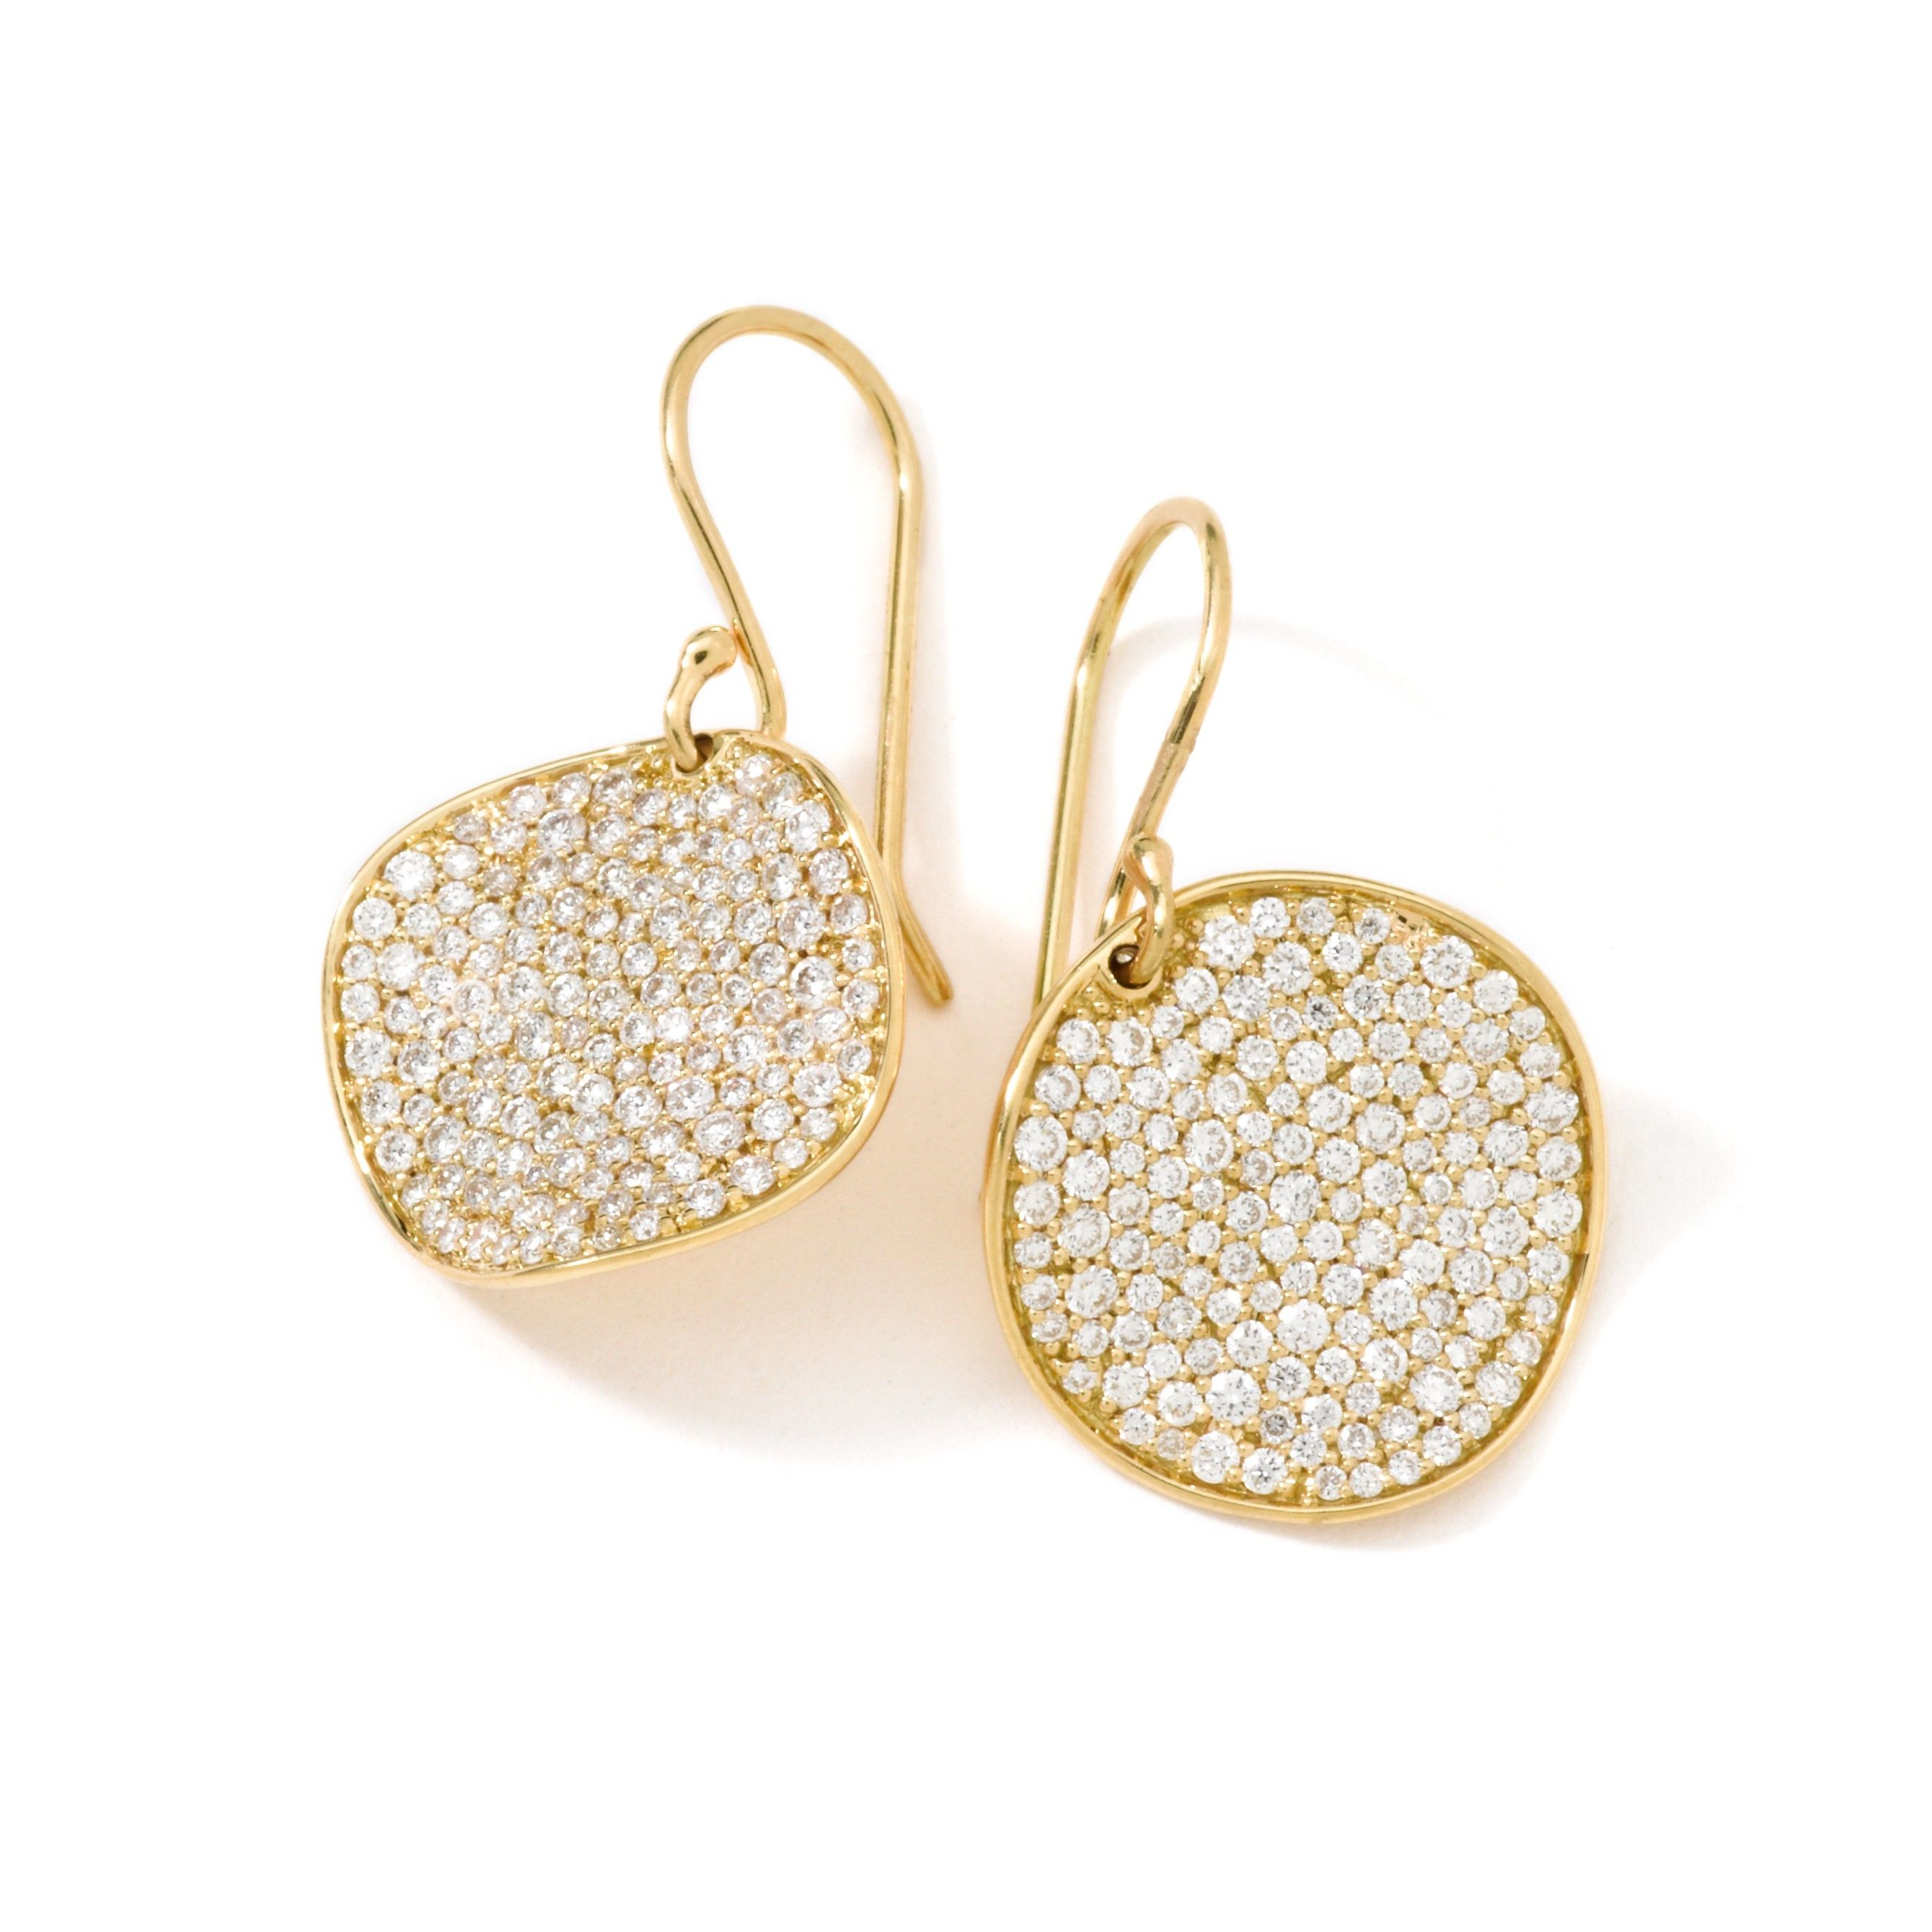 18K Gold Stardust Flower Earrings bob Pinterest